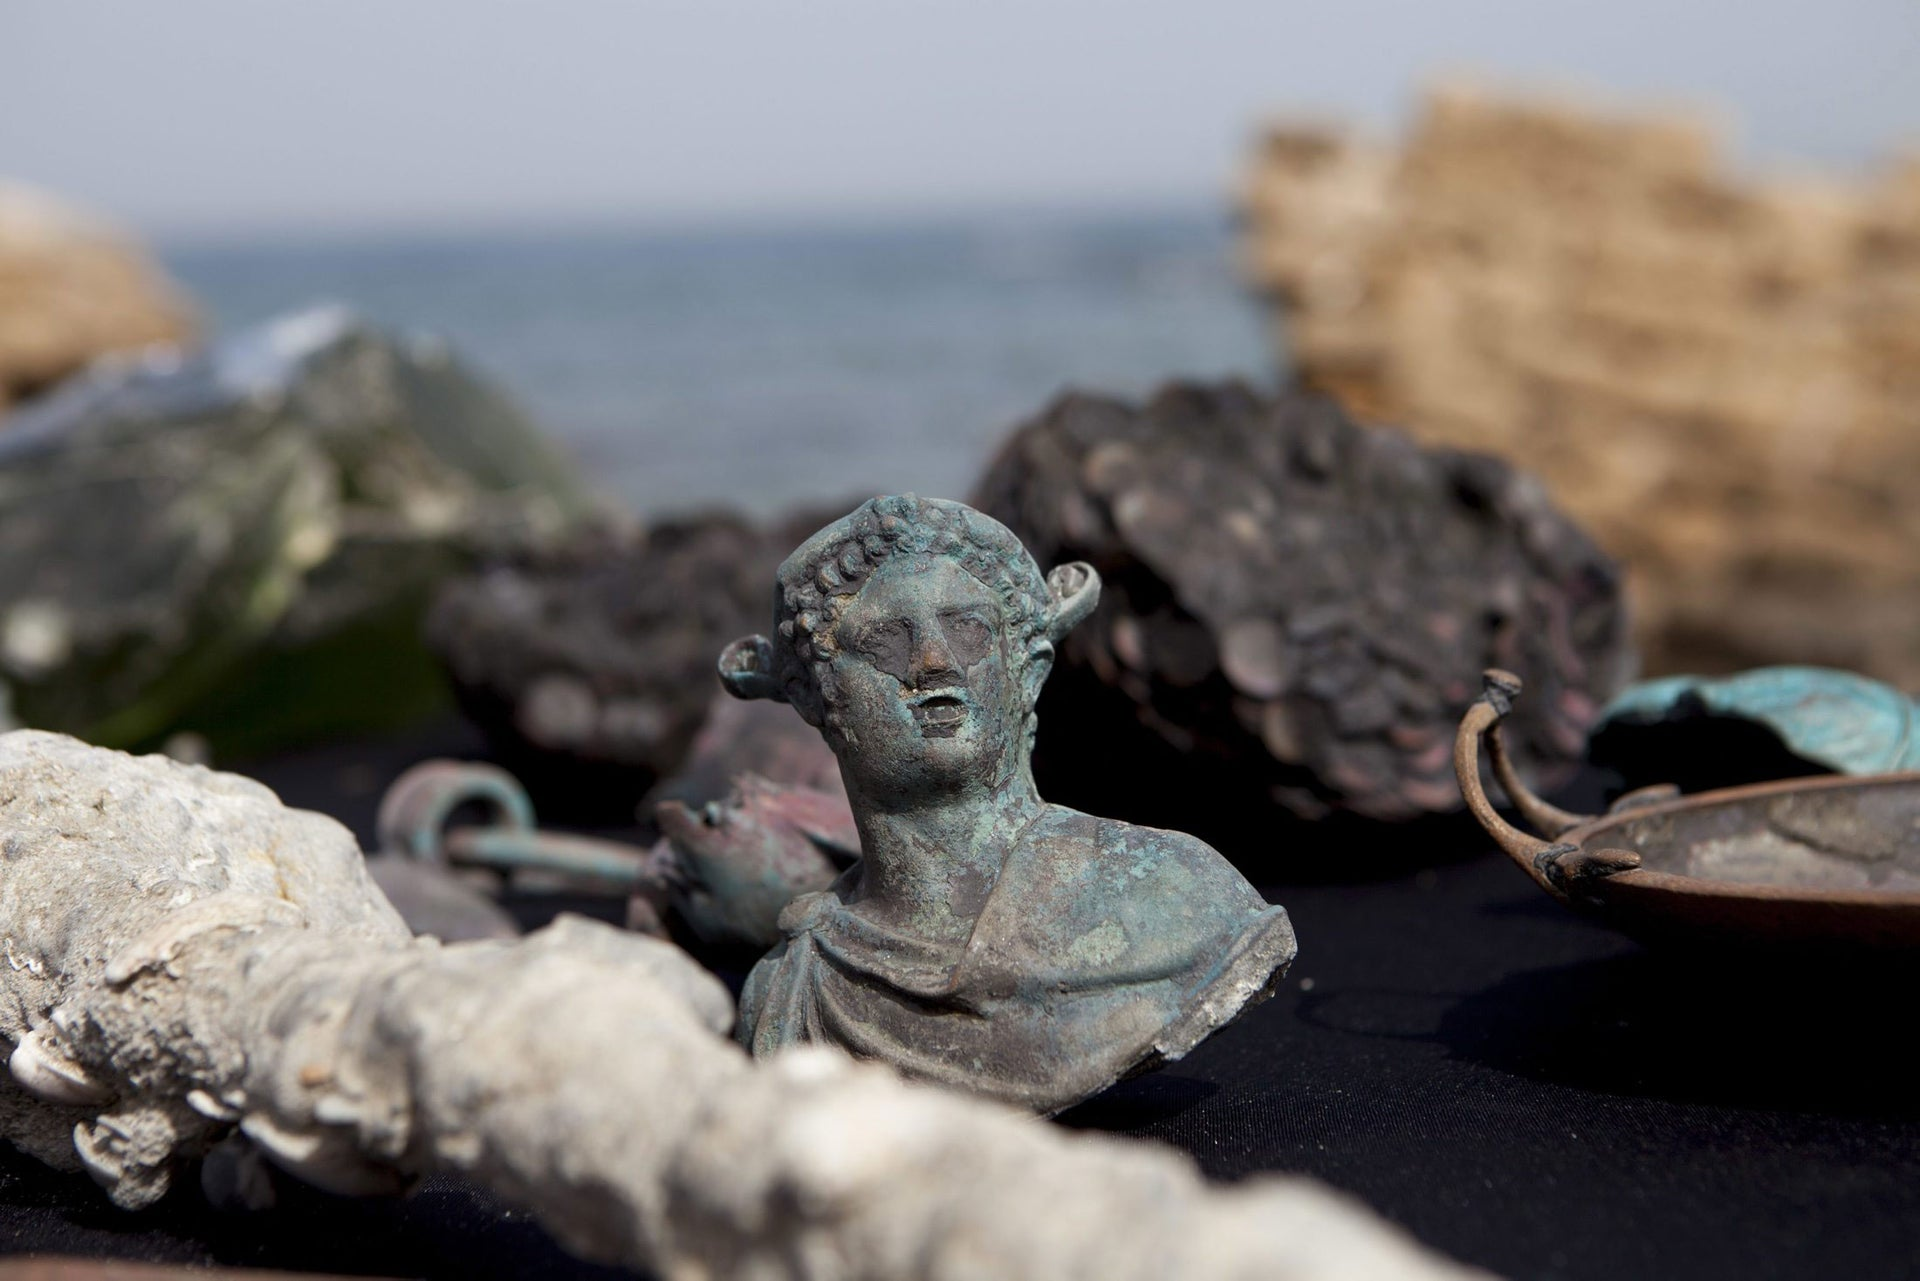 Rare bronze artifacts, part of a large ancient marine cargo of a merchant ship that sank during the Late Roman period 1,600 years ago seen during a presentation of the Israel Antiquities Authority in Caesarea, Israel. Monday, May 16, 2016.